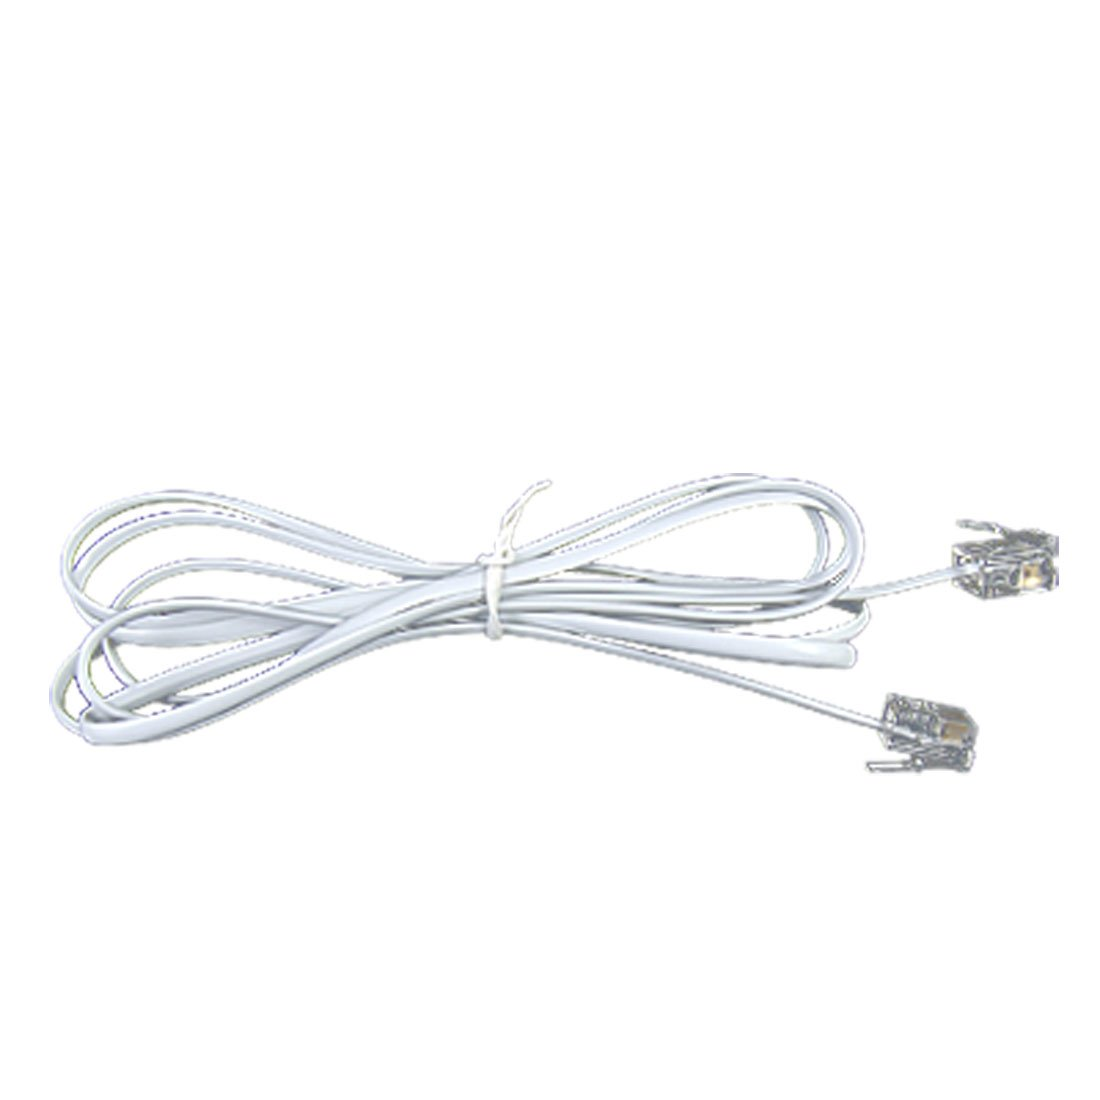 4.8ft RJ11 to RJ11 Male to Male Telephone Cable Connector